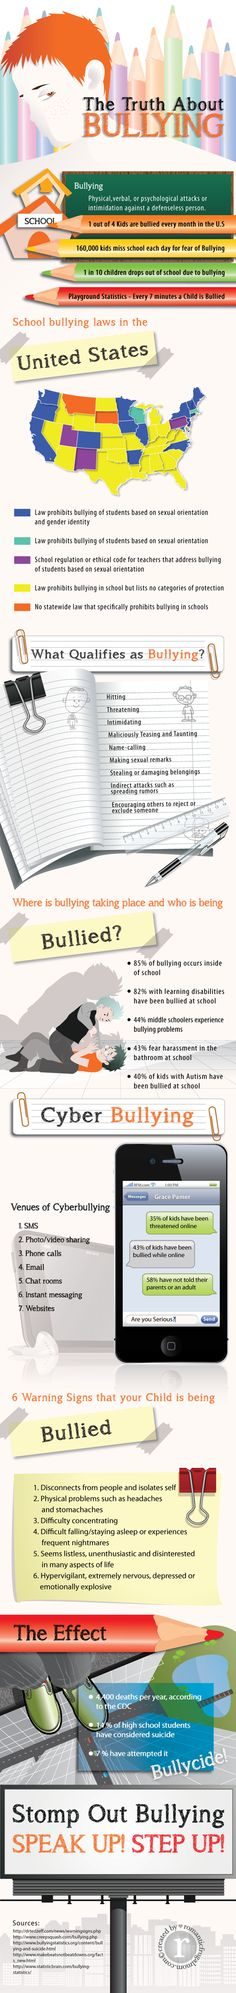 The Truth About Bullying-A bullying infographic